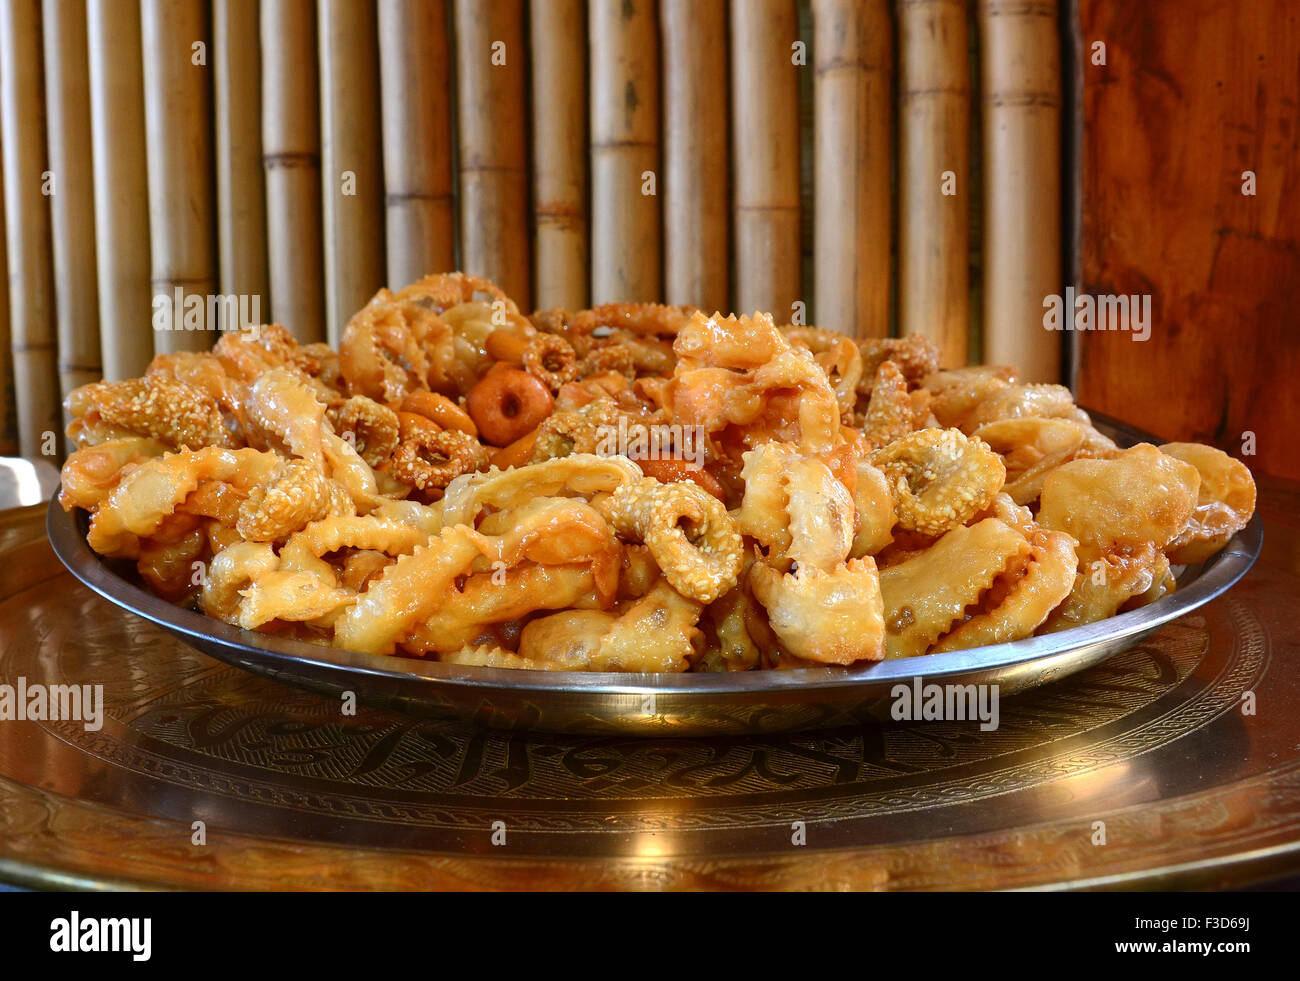 North African sweet pastries - Stock Image